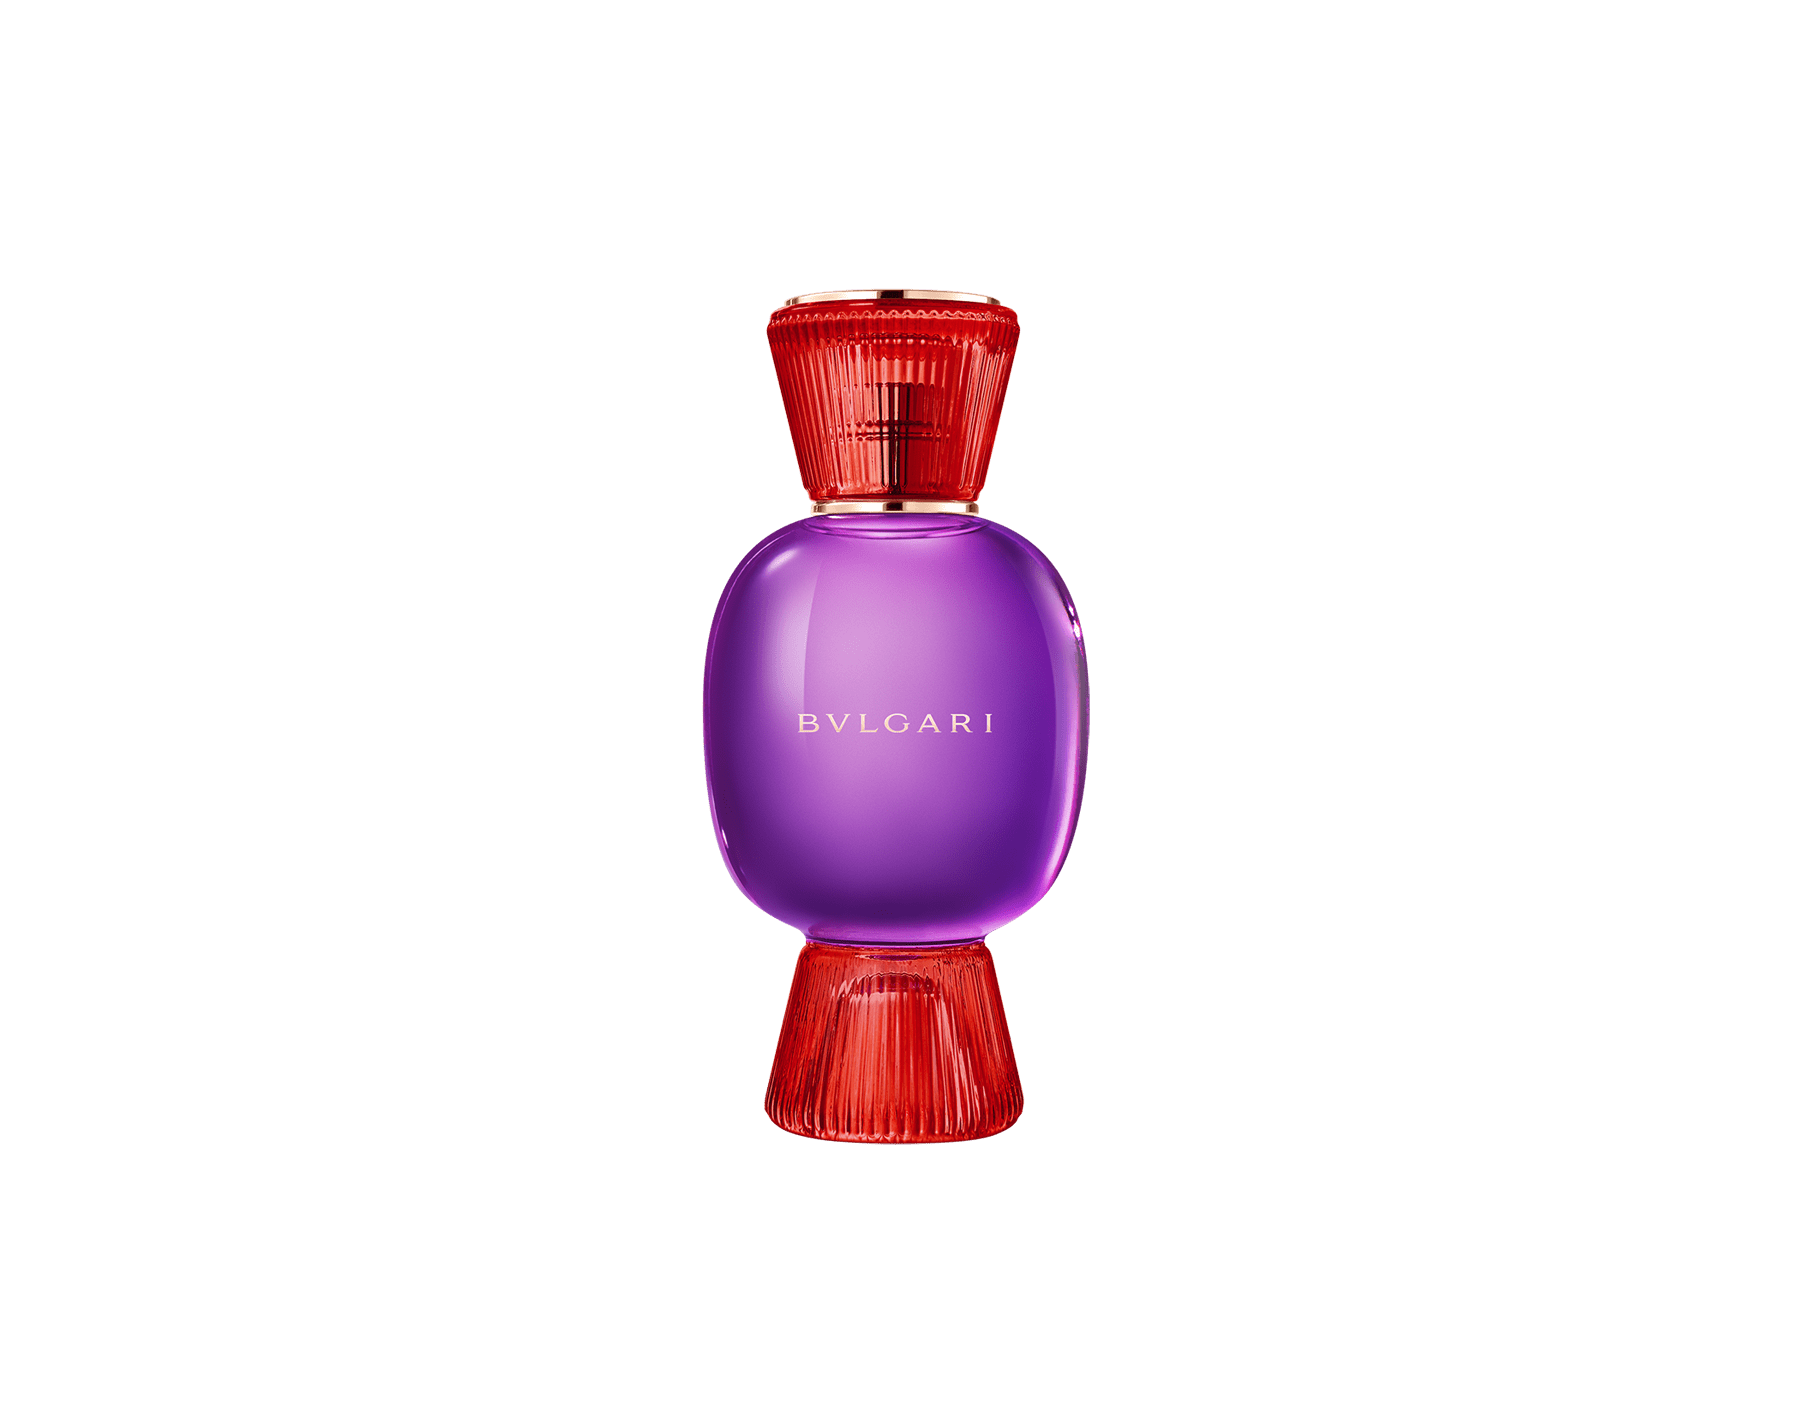 An exclusive perfume set, as bold and unique as you. The festive chypre Fantasia Veneta Allegra Eau de Parfum blends with the velvety, voluptuous intensity of the Magnifying Rose Essence, creating an irresistible personalised women's perfume. Perfume-Set-Fantasia-Veneta-Eau-de-Parfum-and-Rose-Magnifying image 2